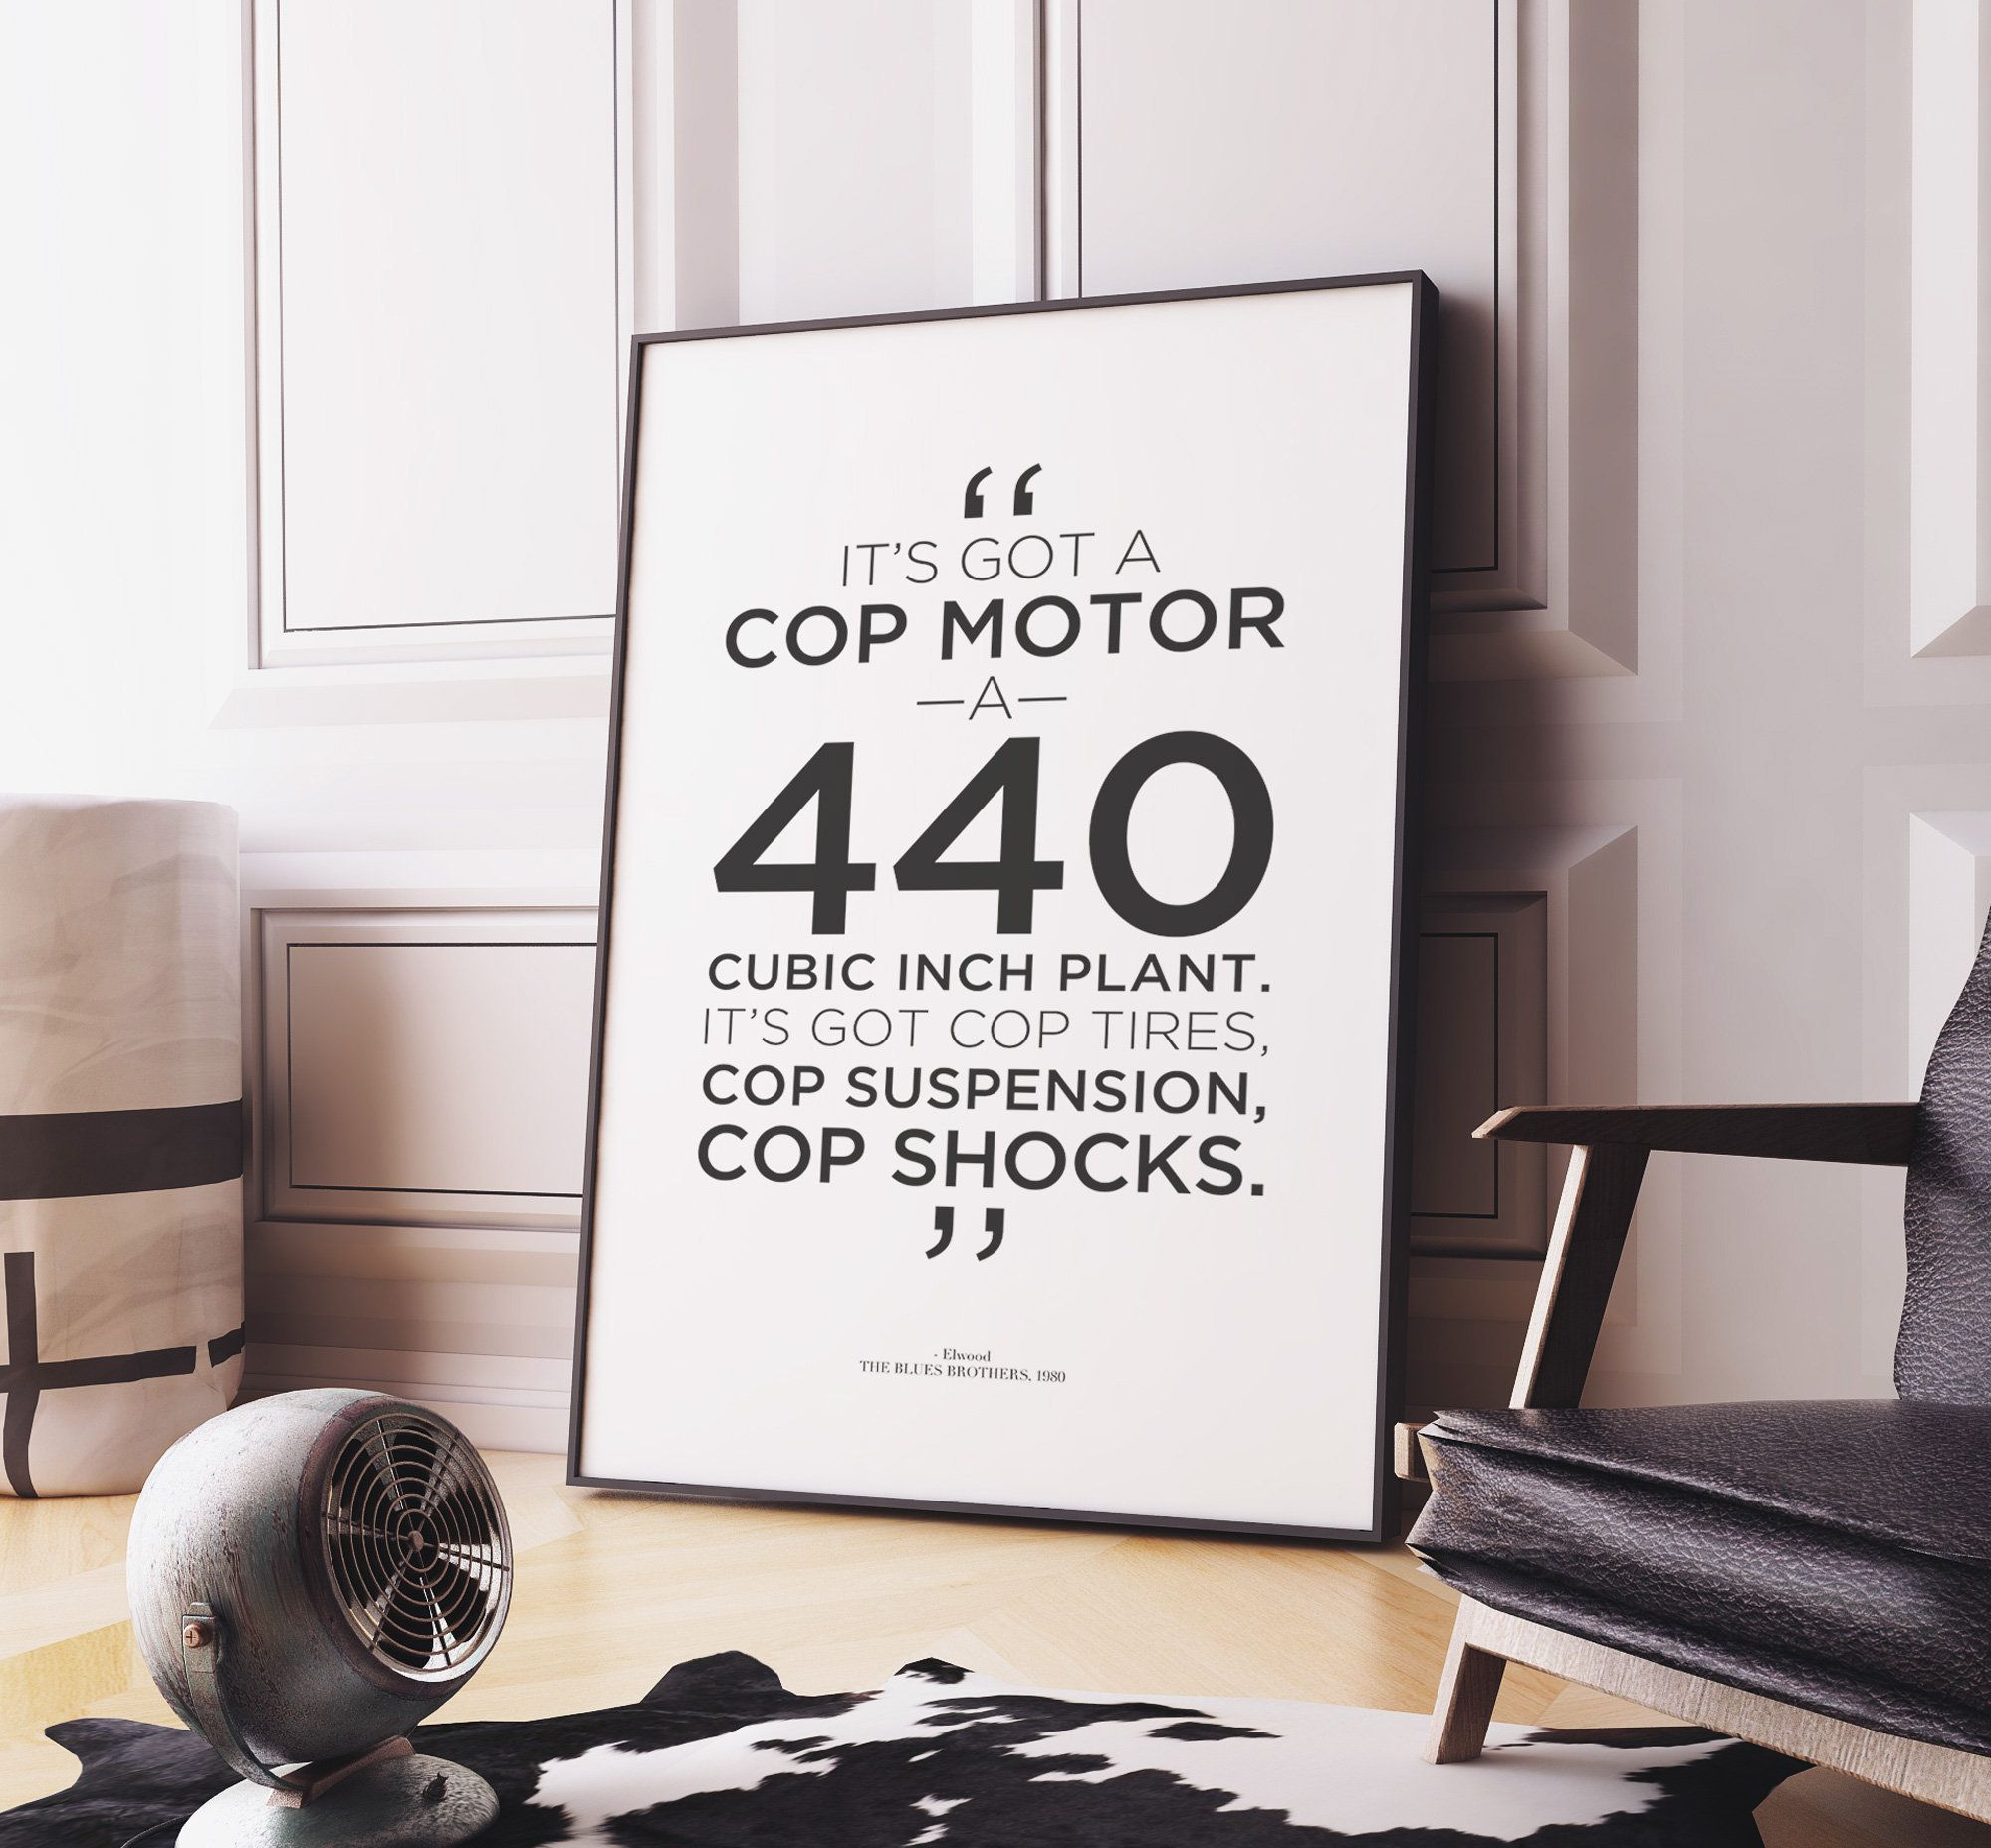 Blues brothers movie quote poster cop motor 440 cubic